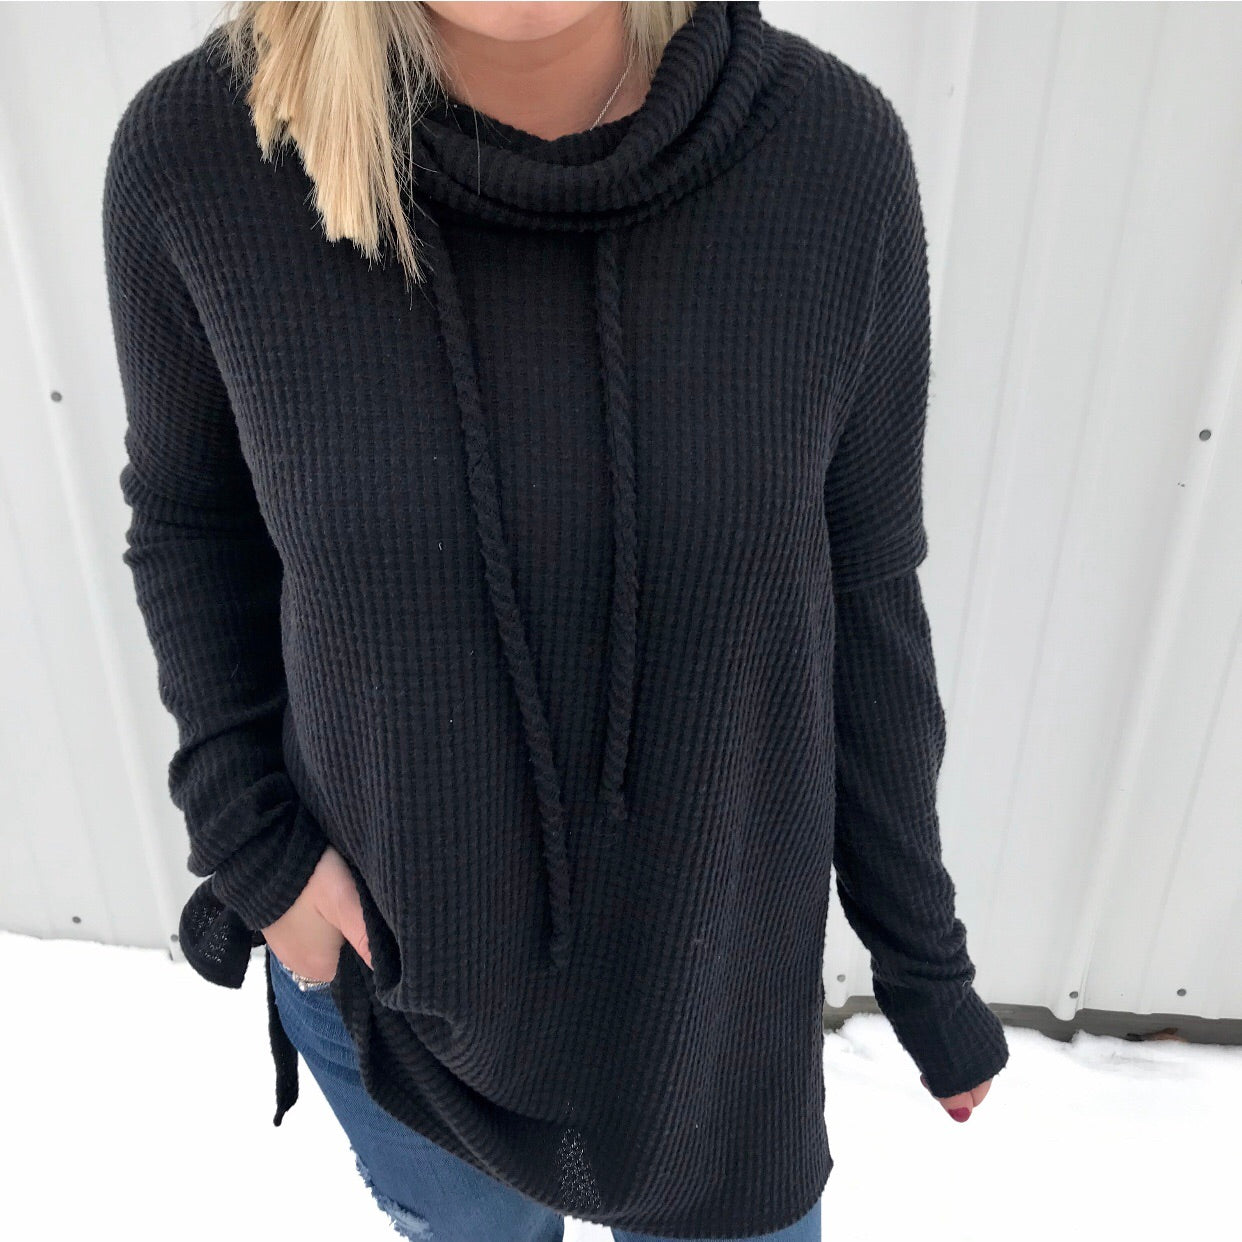 Black Cowl Neck Tunic Top